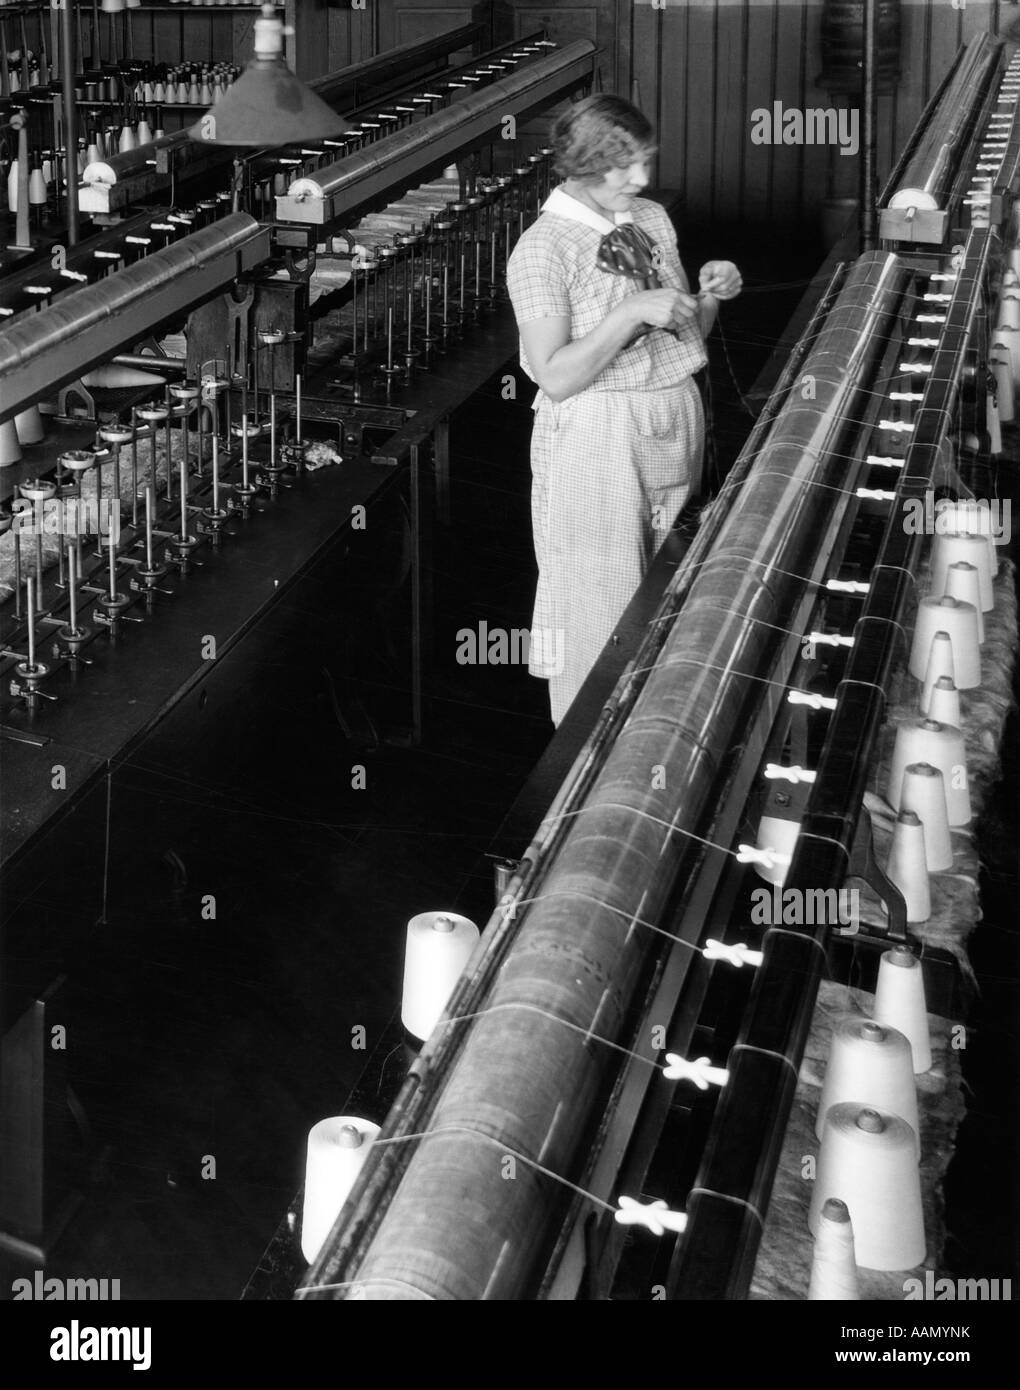 1920s 1930s WOMAN WORKER THREADING BOBBIN INDUSTRIAL SILK WINDING FACTORY PHILADELPHIA PA MACHINE TEXTILE SPOOLS - Stock Image